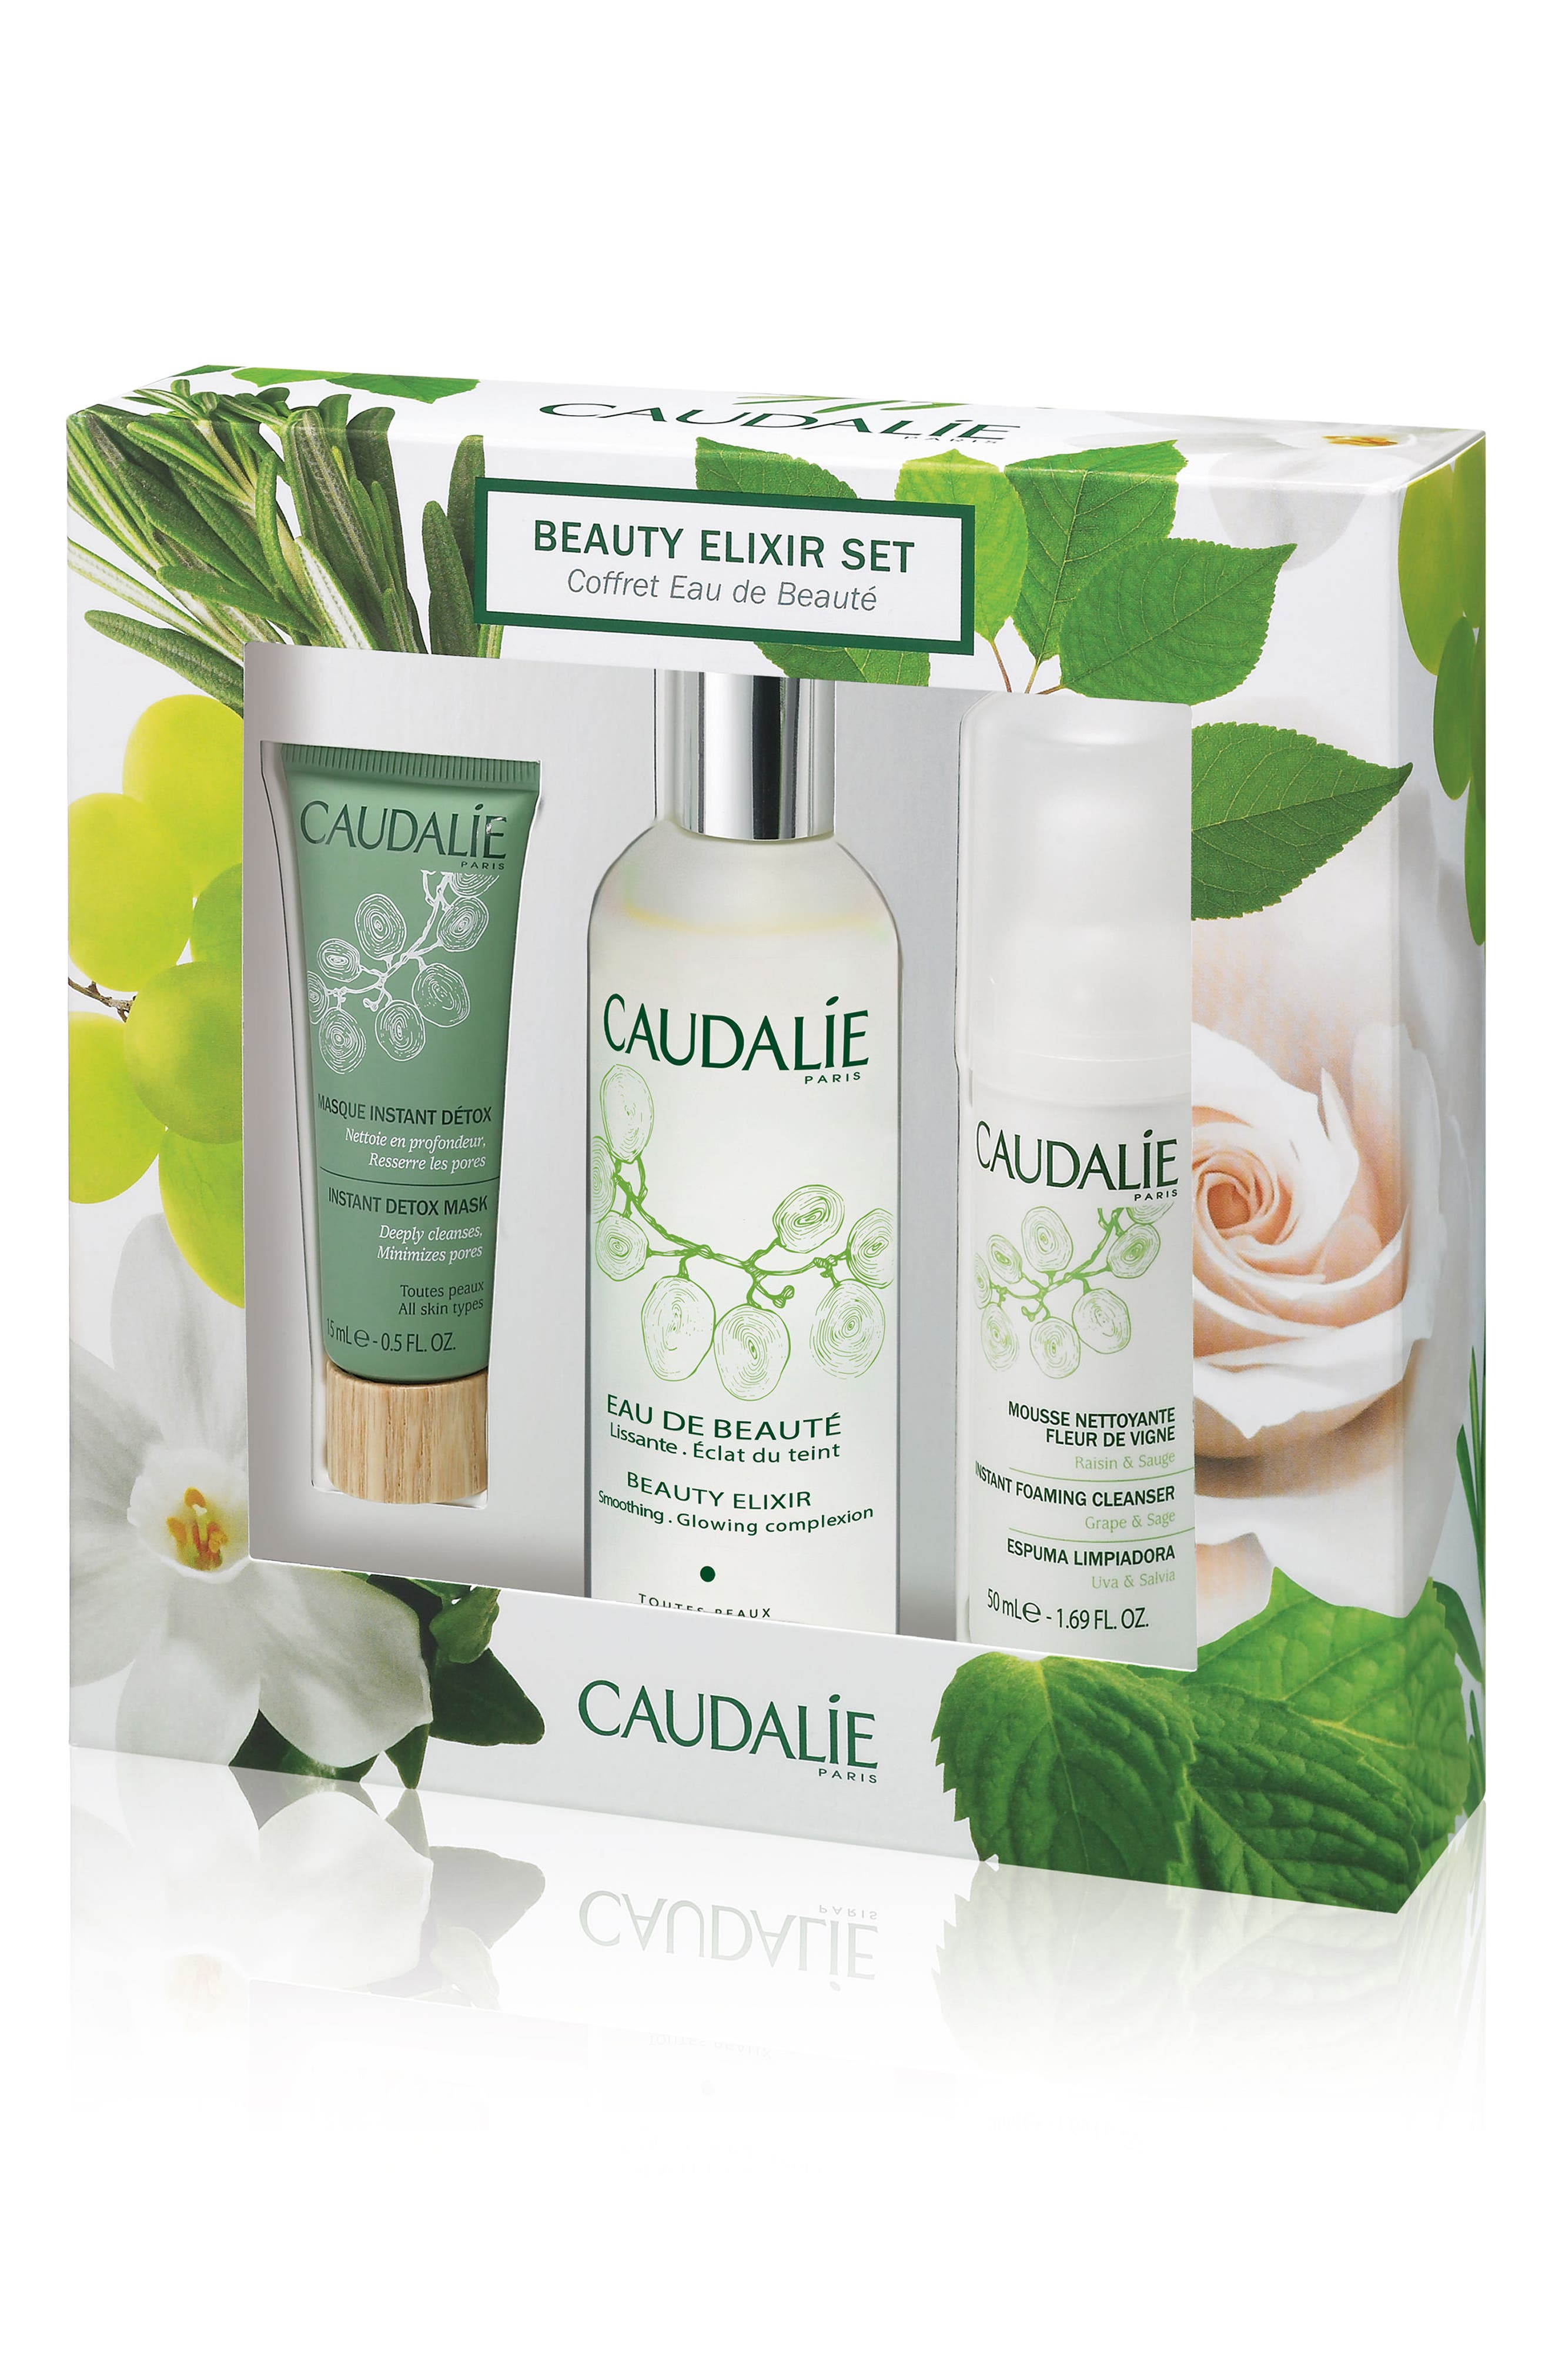 CAUDALÍE Beauty Elixir Set ($70 Value)